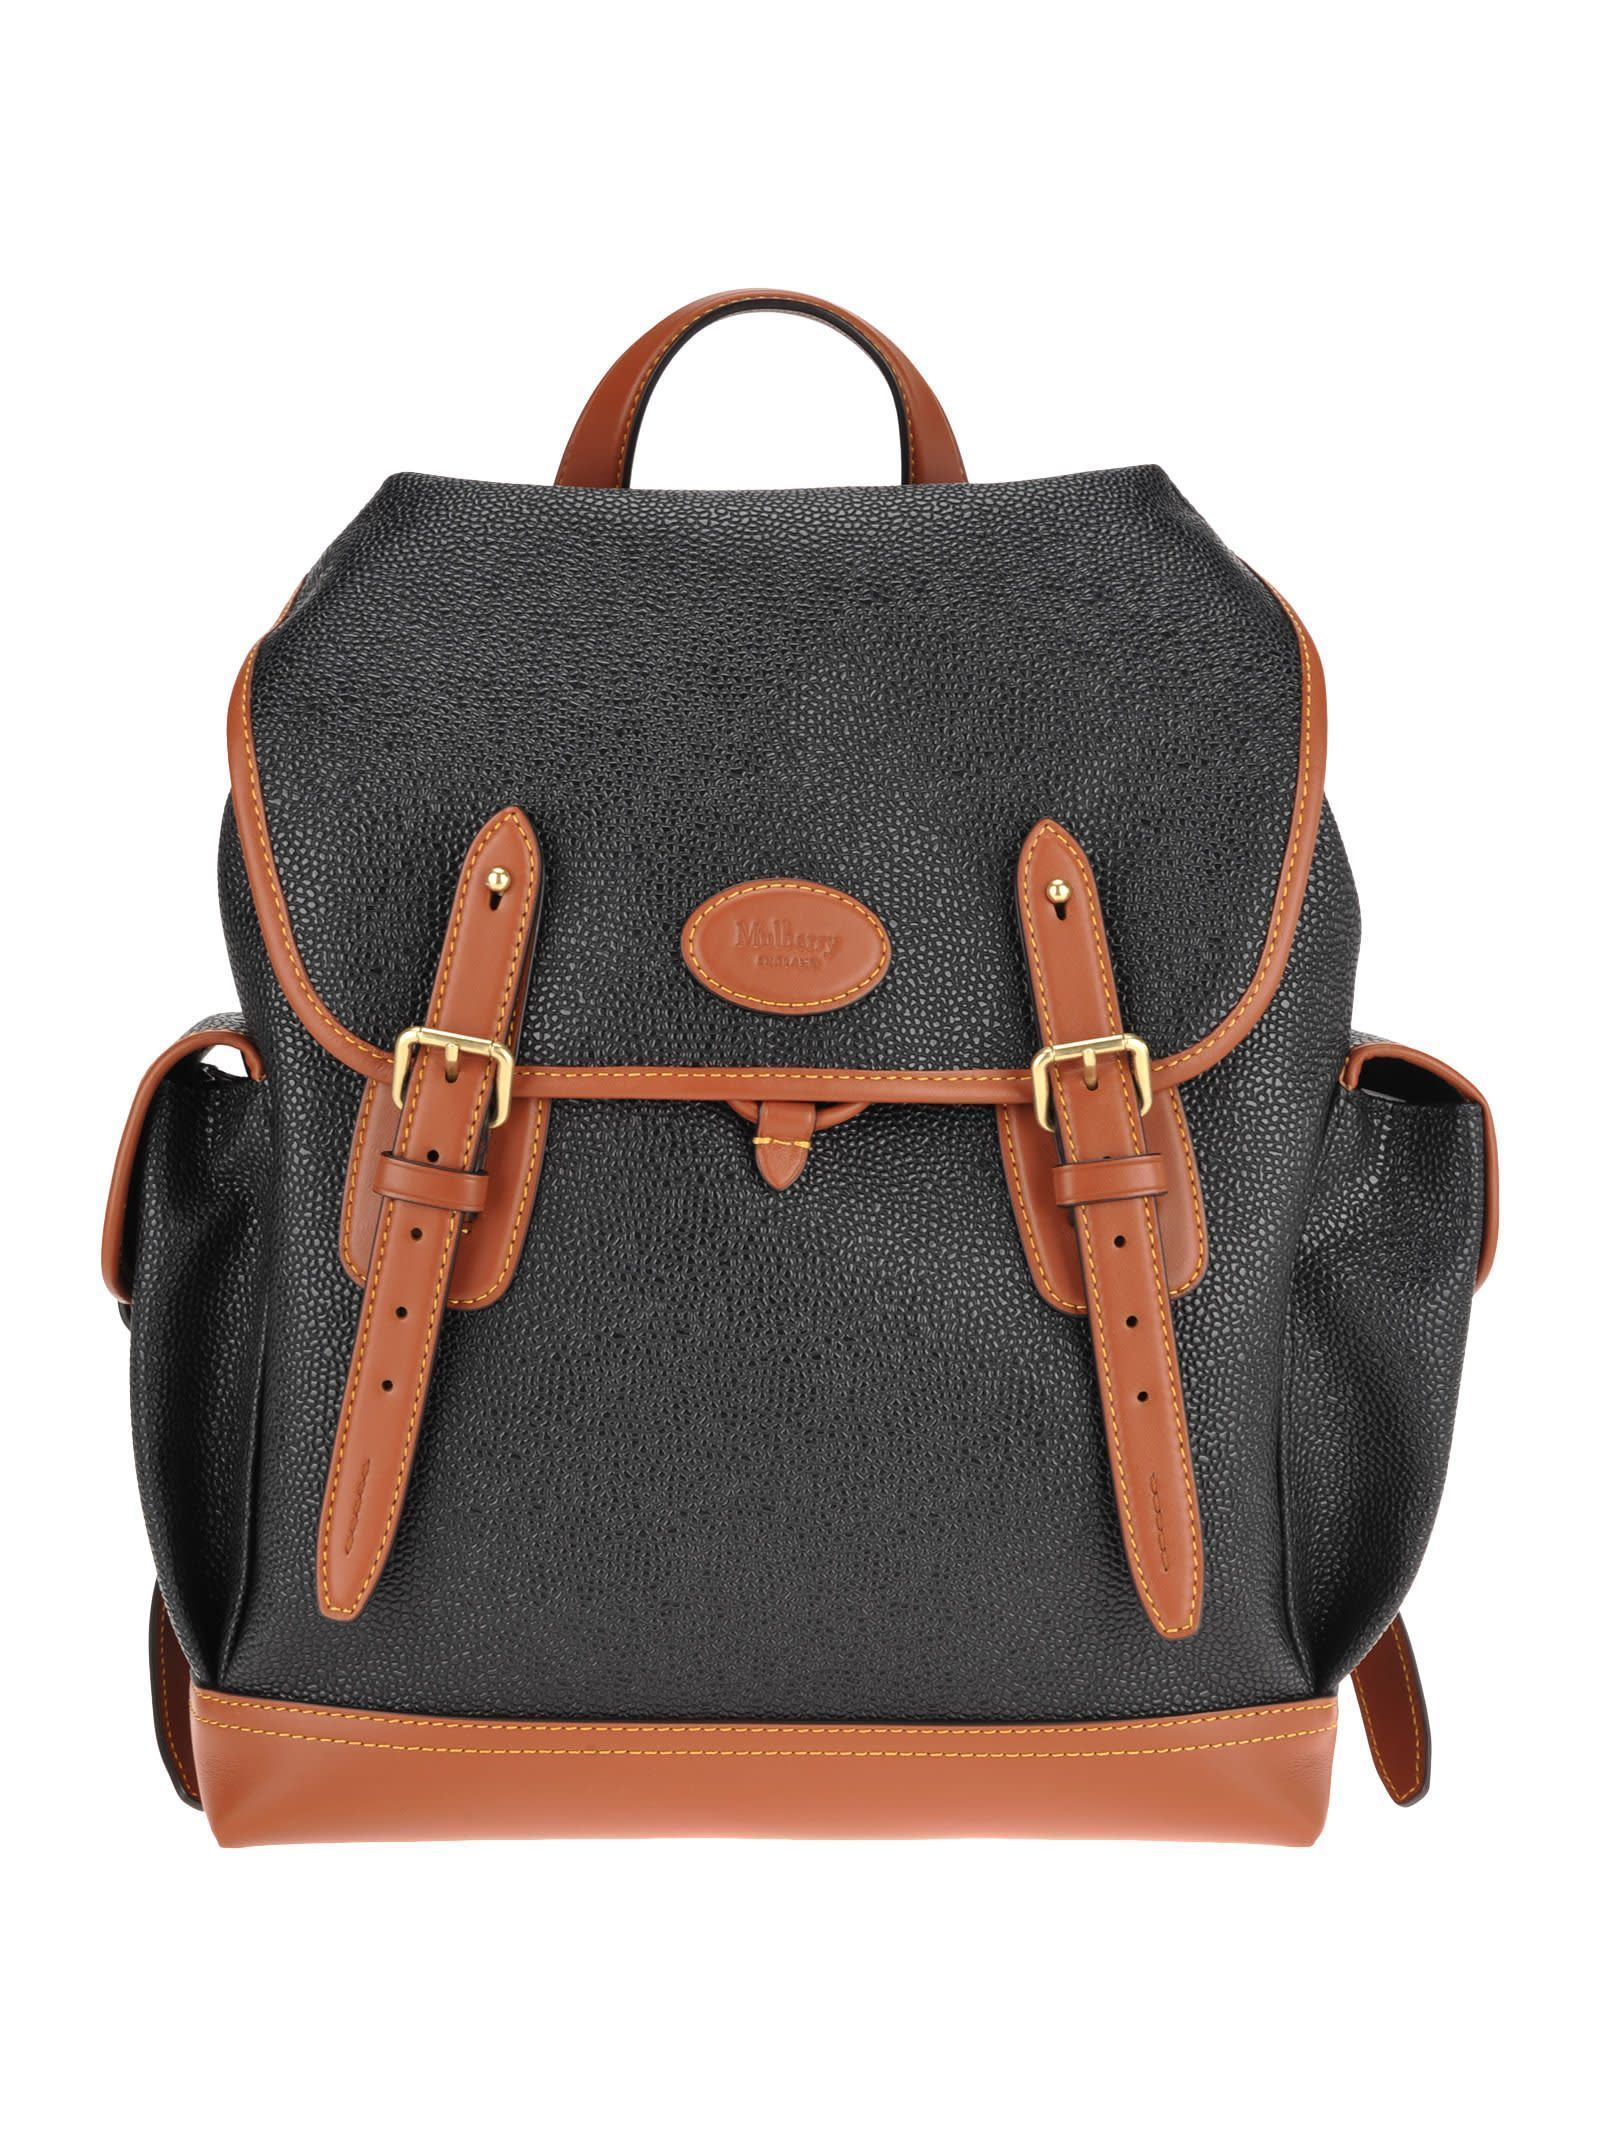 MULBERRY HERITAGE BACKPACK. #mulberry #bags #leather #canvas #backpacks #mulberrybag MULBERRY HERITAGE BACKPACK. #mulberry #bags #leather #canvas #backpacks #mulberrybag MULBERRY HERITAGE BACKPACK. #mulberry #bags #leather #canvas #backpacks #mulberrybag MULBERRY HERITAGE BACKPACK. #mulberry #bags #leather #canvas #backpacks #mulberrybag MULBERRY HERITAGE BACKPACK. #mulberry #bags #leather #canvas #backpacks #mulberrybag MULBERRY HERITAGE BACKPACK. #mulberry #bags #leather #canvas #backpacks #mu #mulberrybag